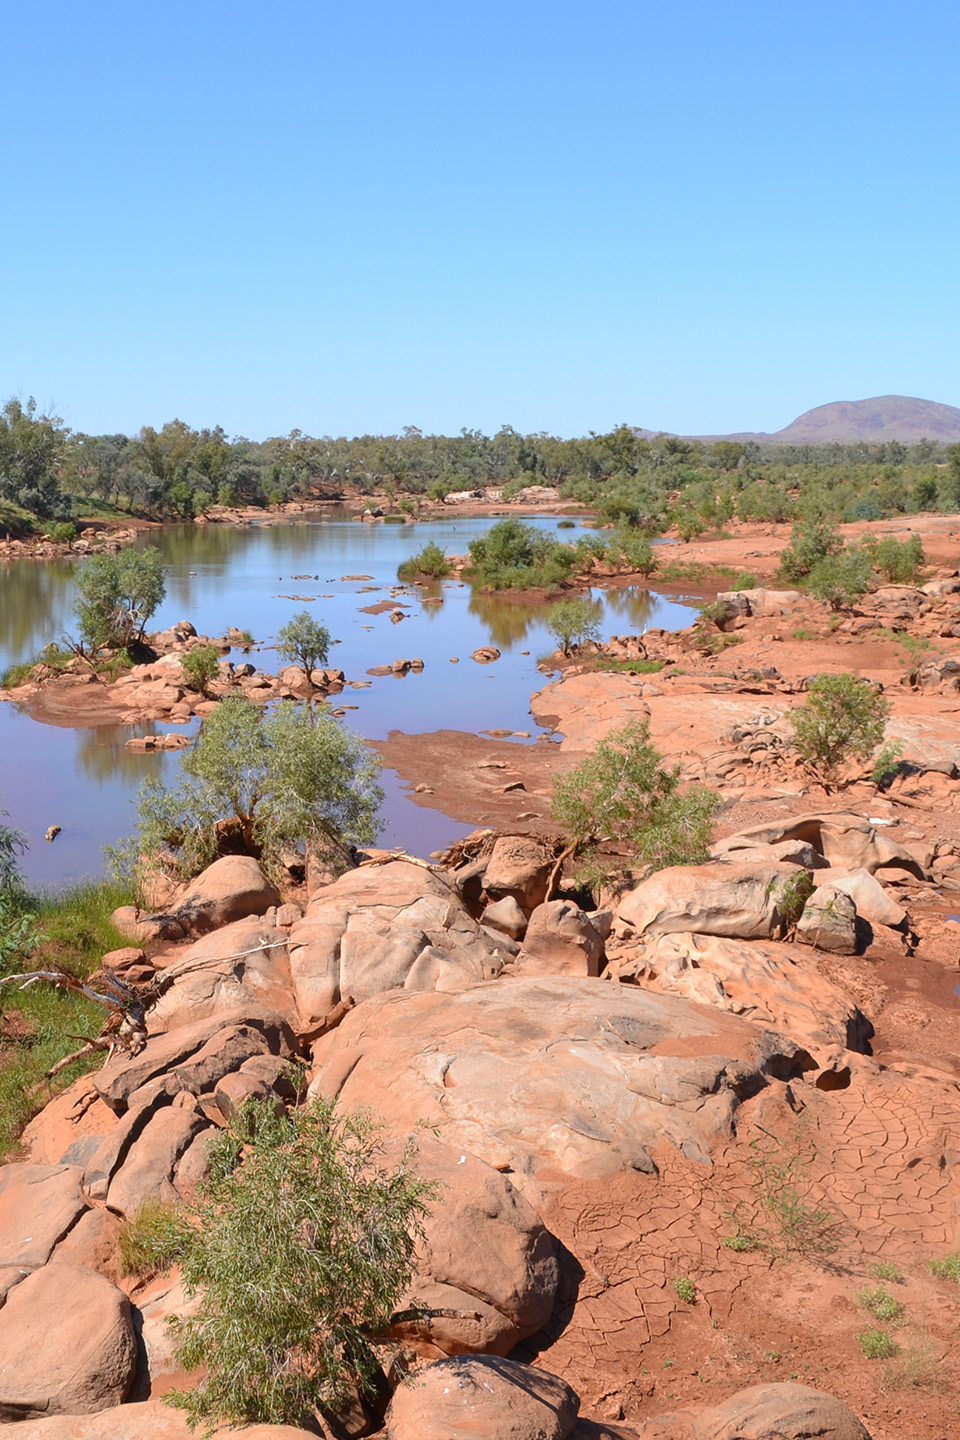 Rocky riverbank in Northern Australia